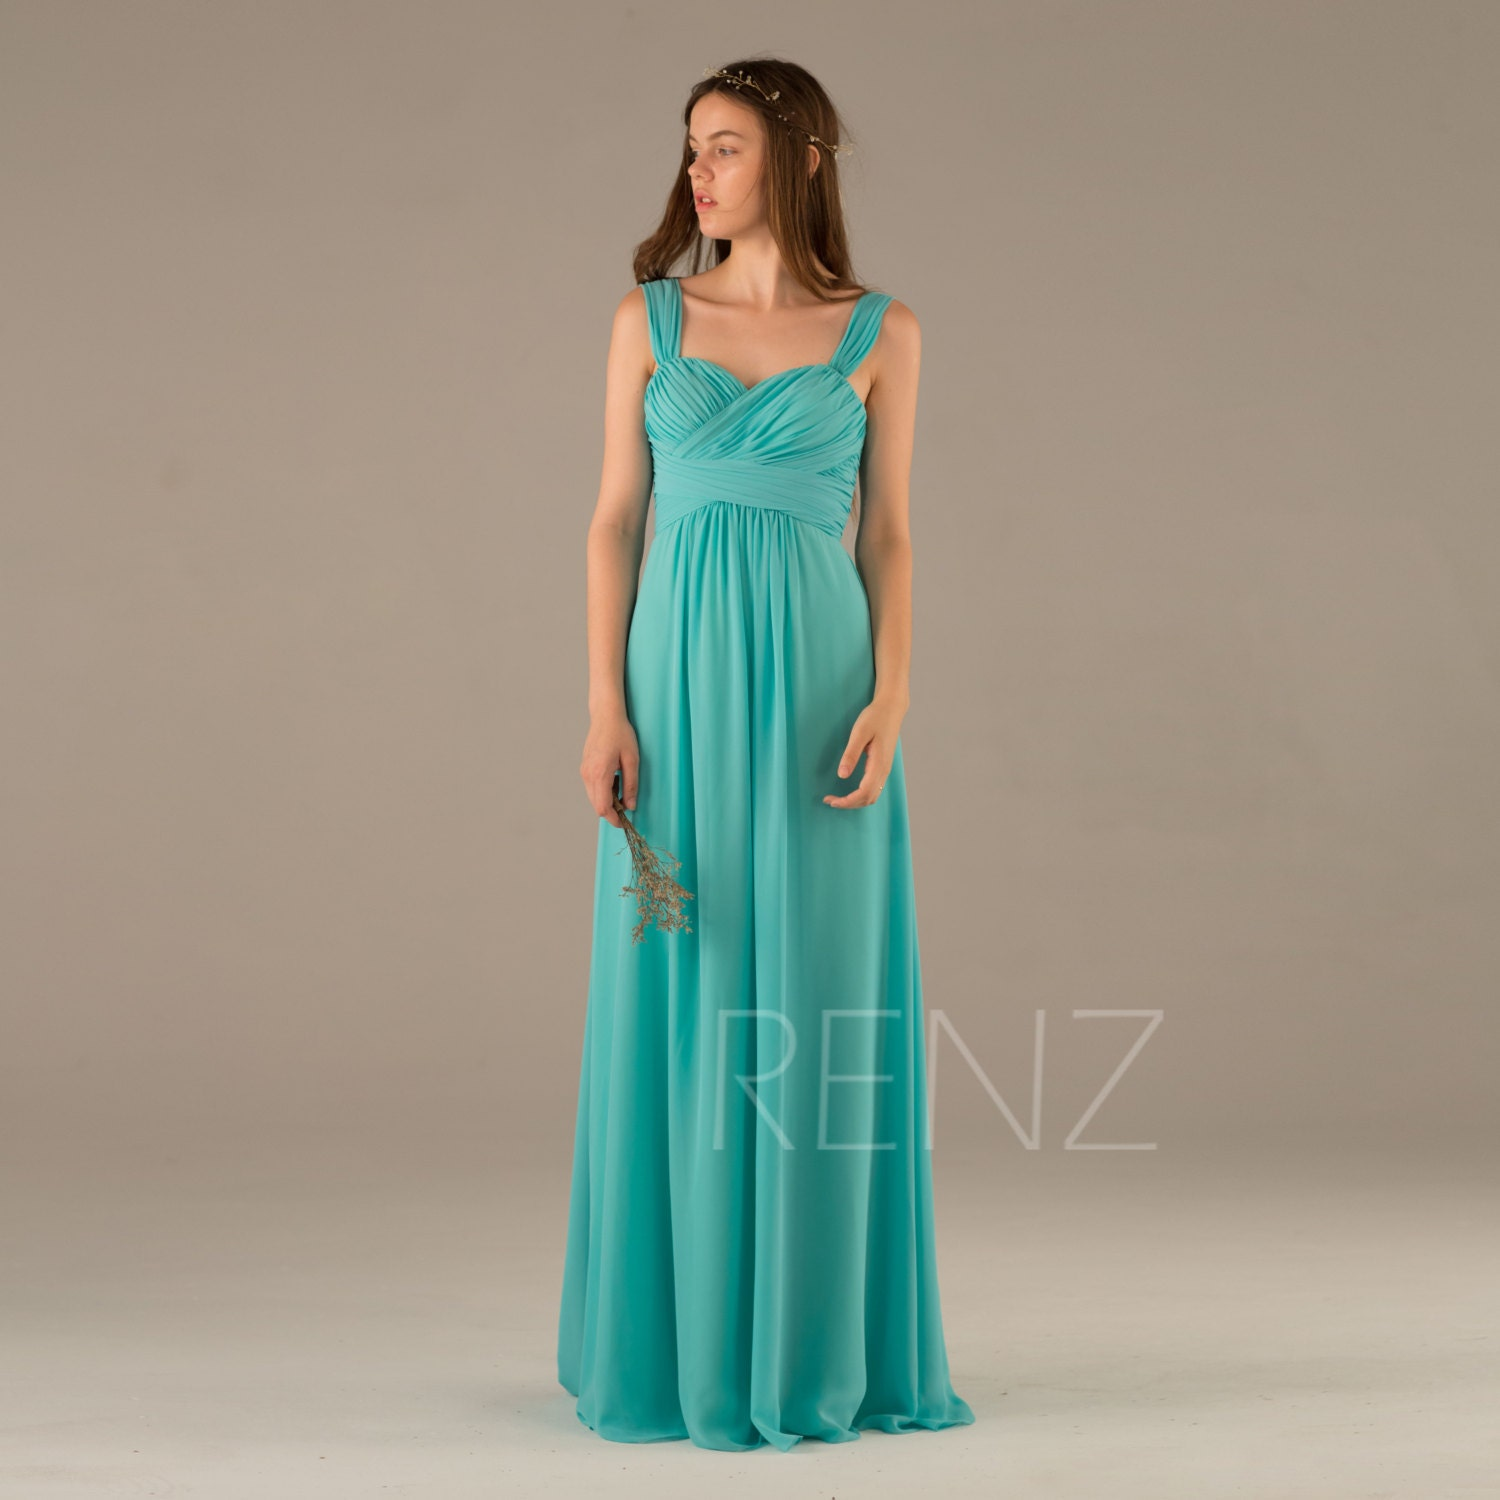 Bridesmaid Dress Turquoise Wedding DressLong Criss Cross